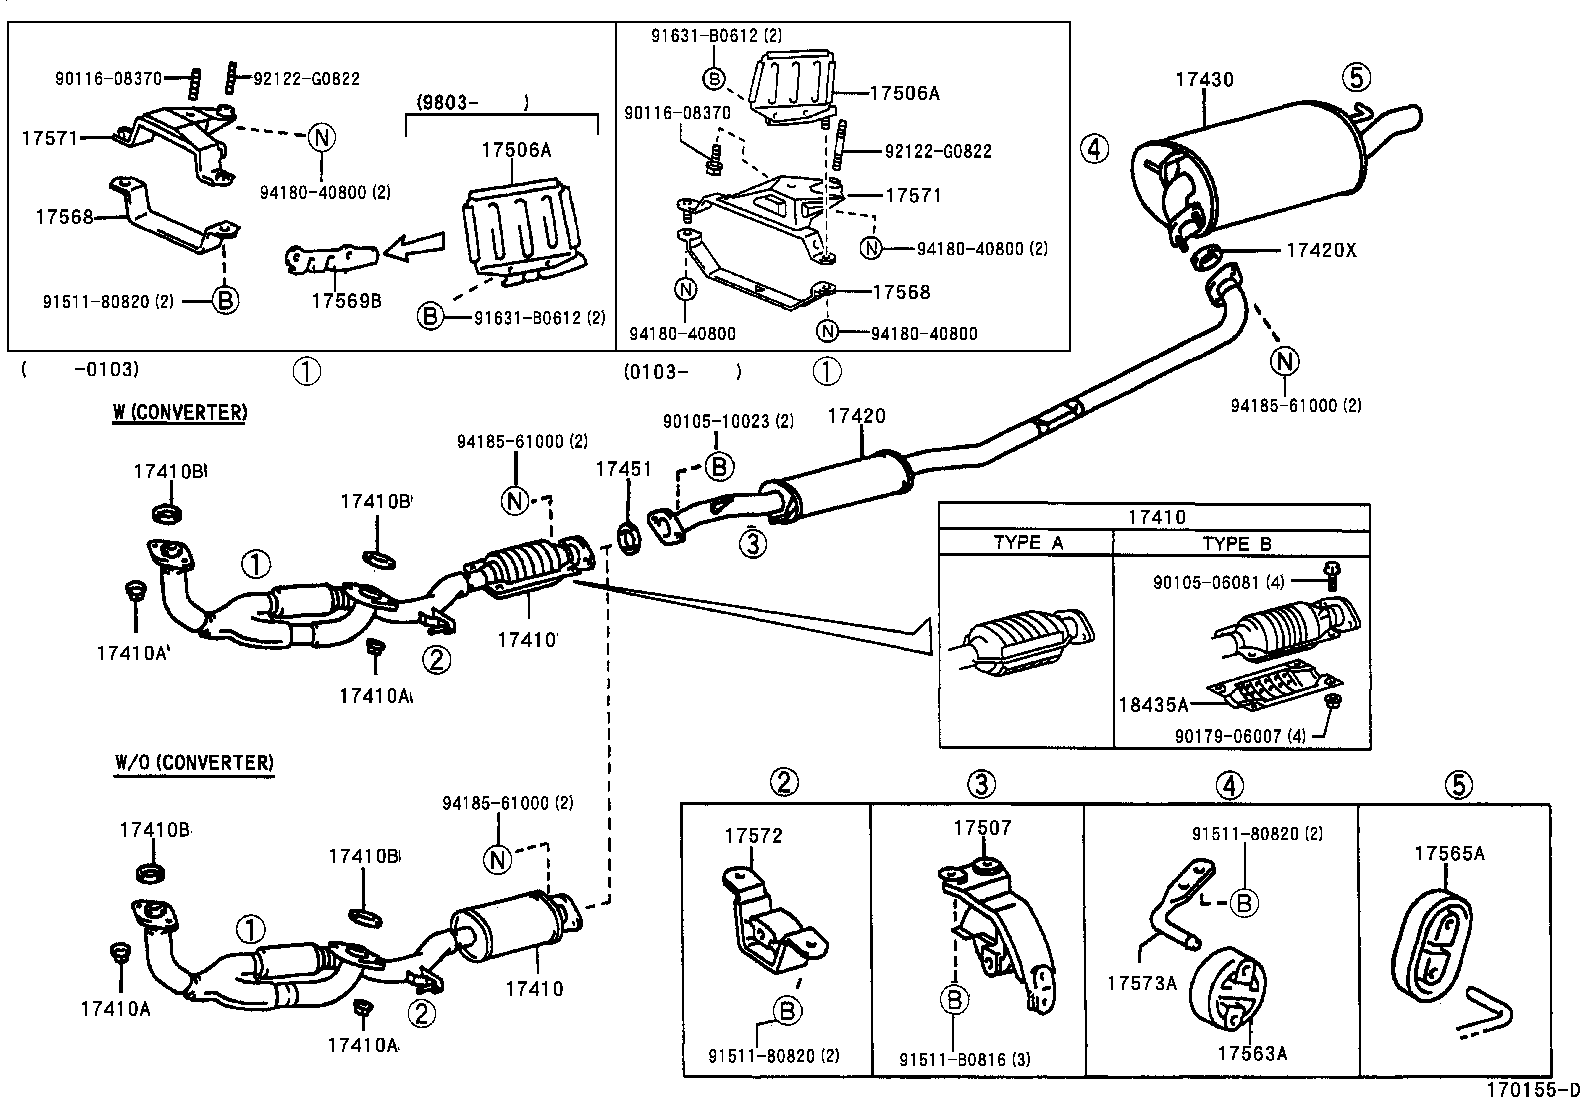 Fj Cruiser Wiring Diagram Will Be A Thing 2001 Camry Toyota Corolla Exhaust System Library Subwoofer